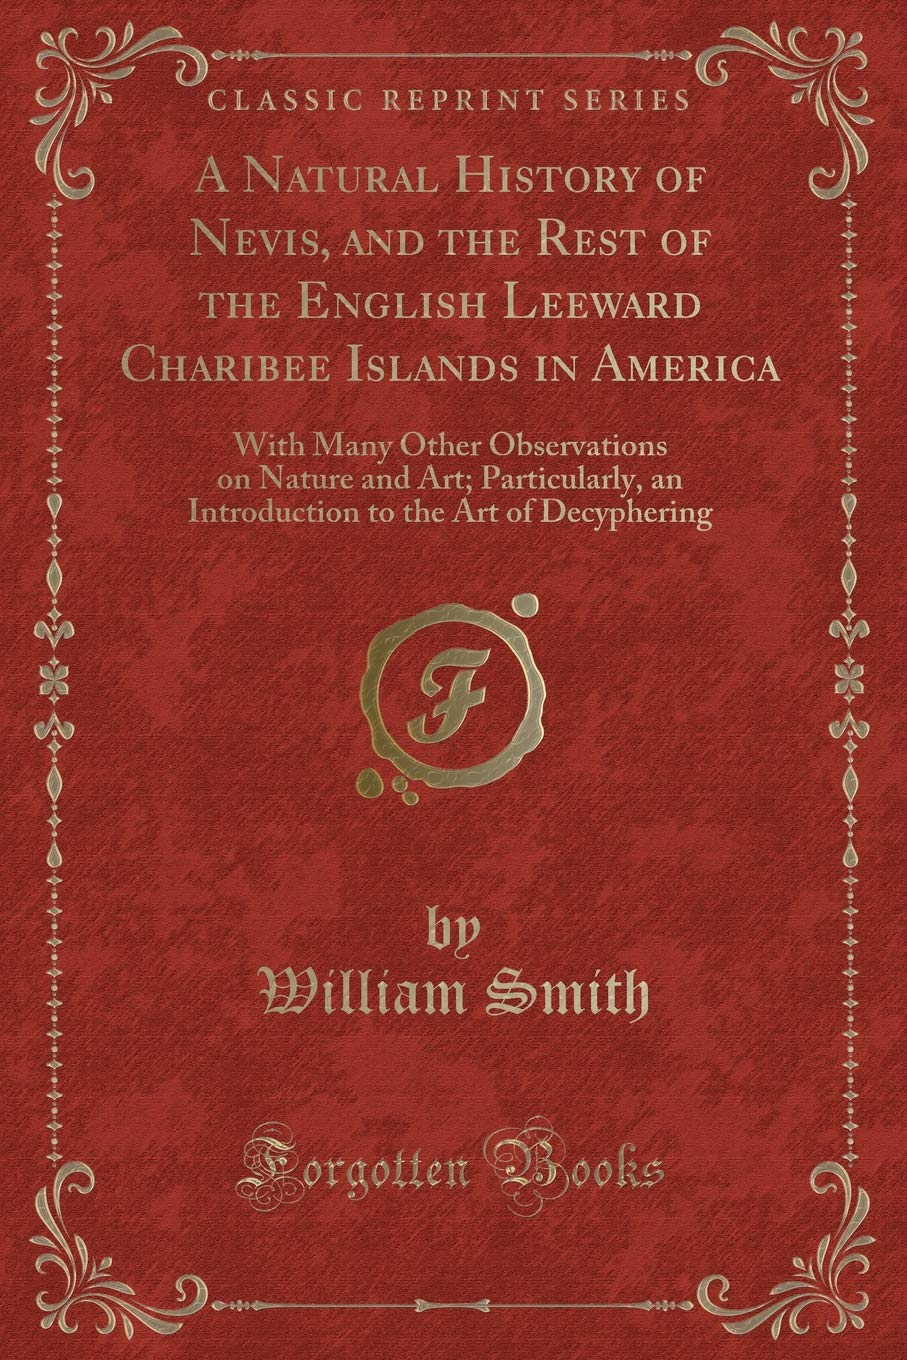 A Natural History of Nevis, and the Rest of the English Leeward Charibee Islands in America: With Many Other Observations on Nature and Art; ... to the Art of Decyphering (Classic Reprint) ebook